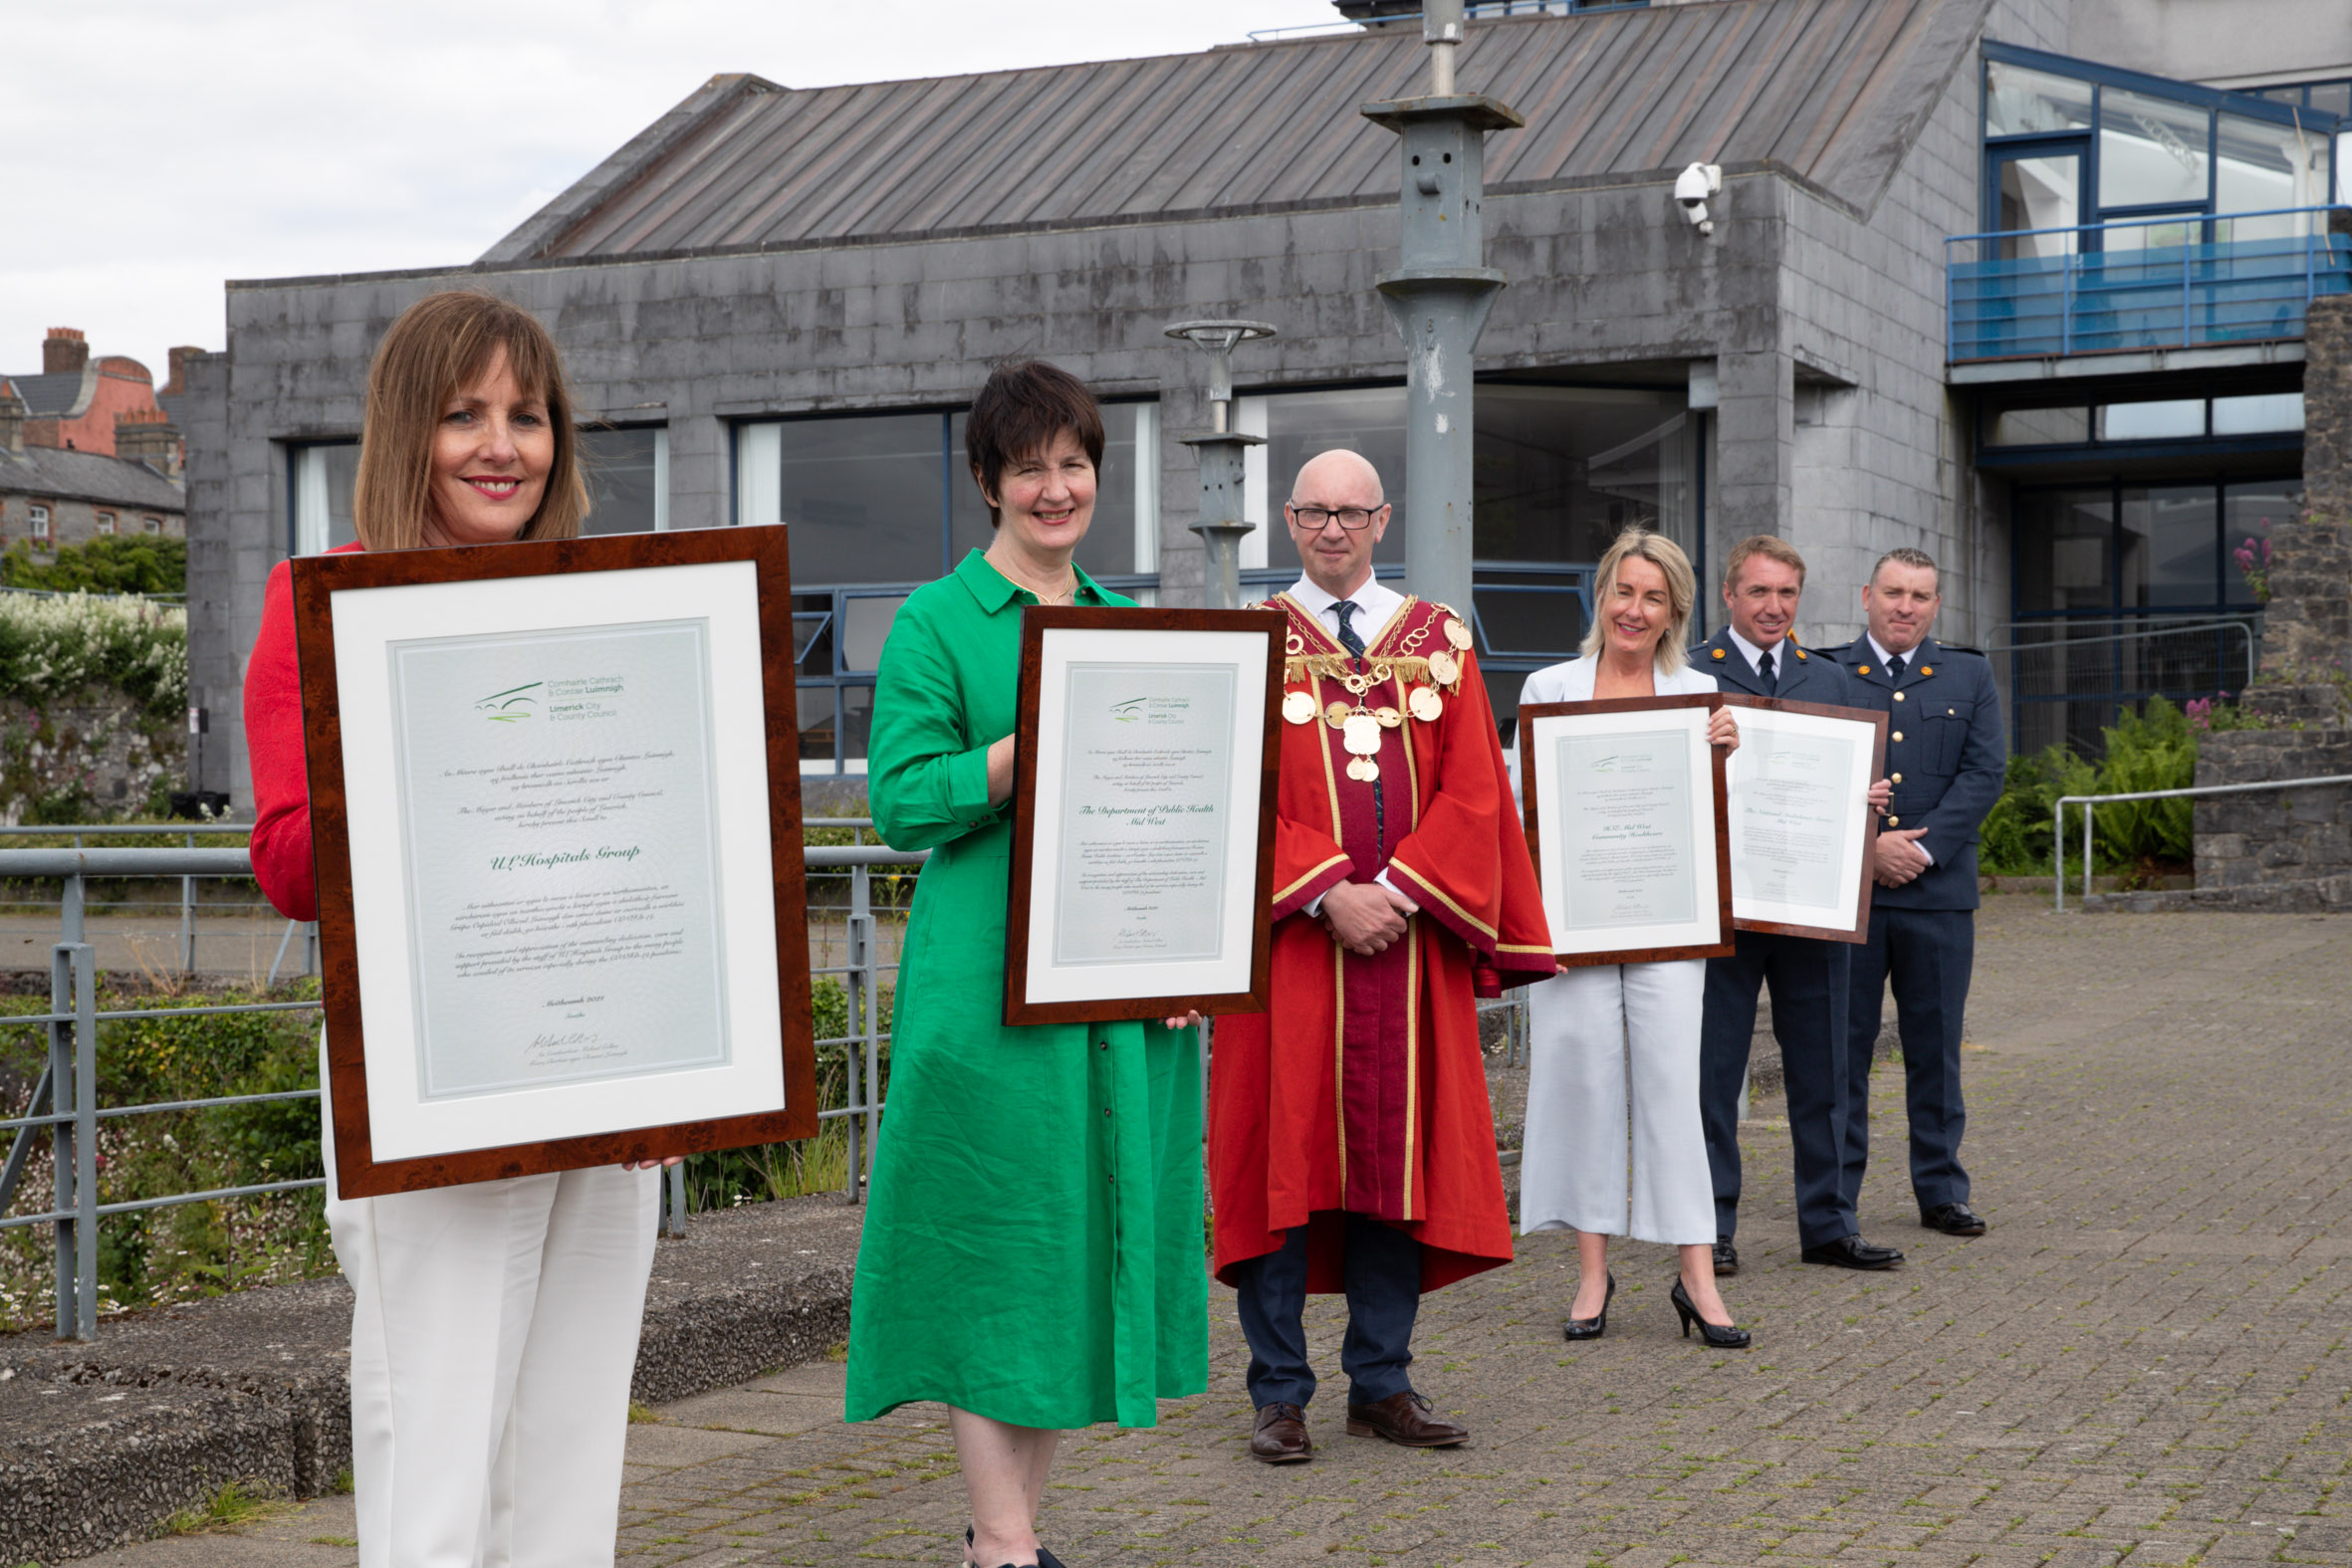 Mayor Michael Collins presented scrolls to representatives of the UL Hospitals Group, National Ambulance Service  Midwest, Department of Public Health Midwest and HSE Midwest Community Healthcare. Picture: Keith Wiseman